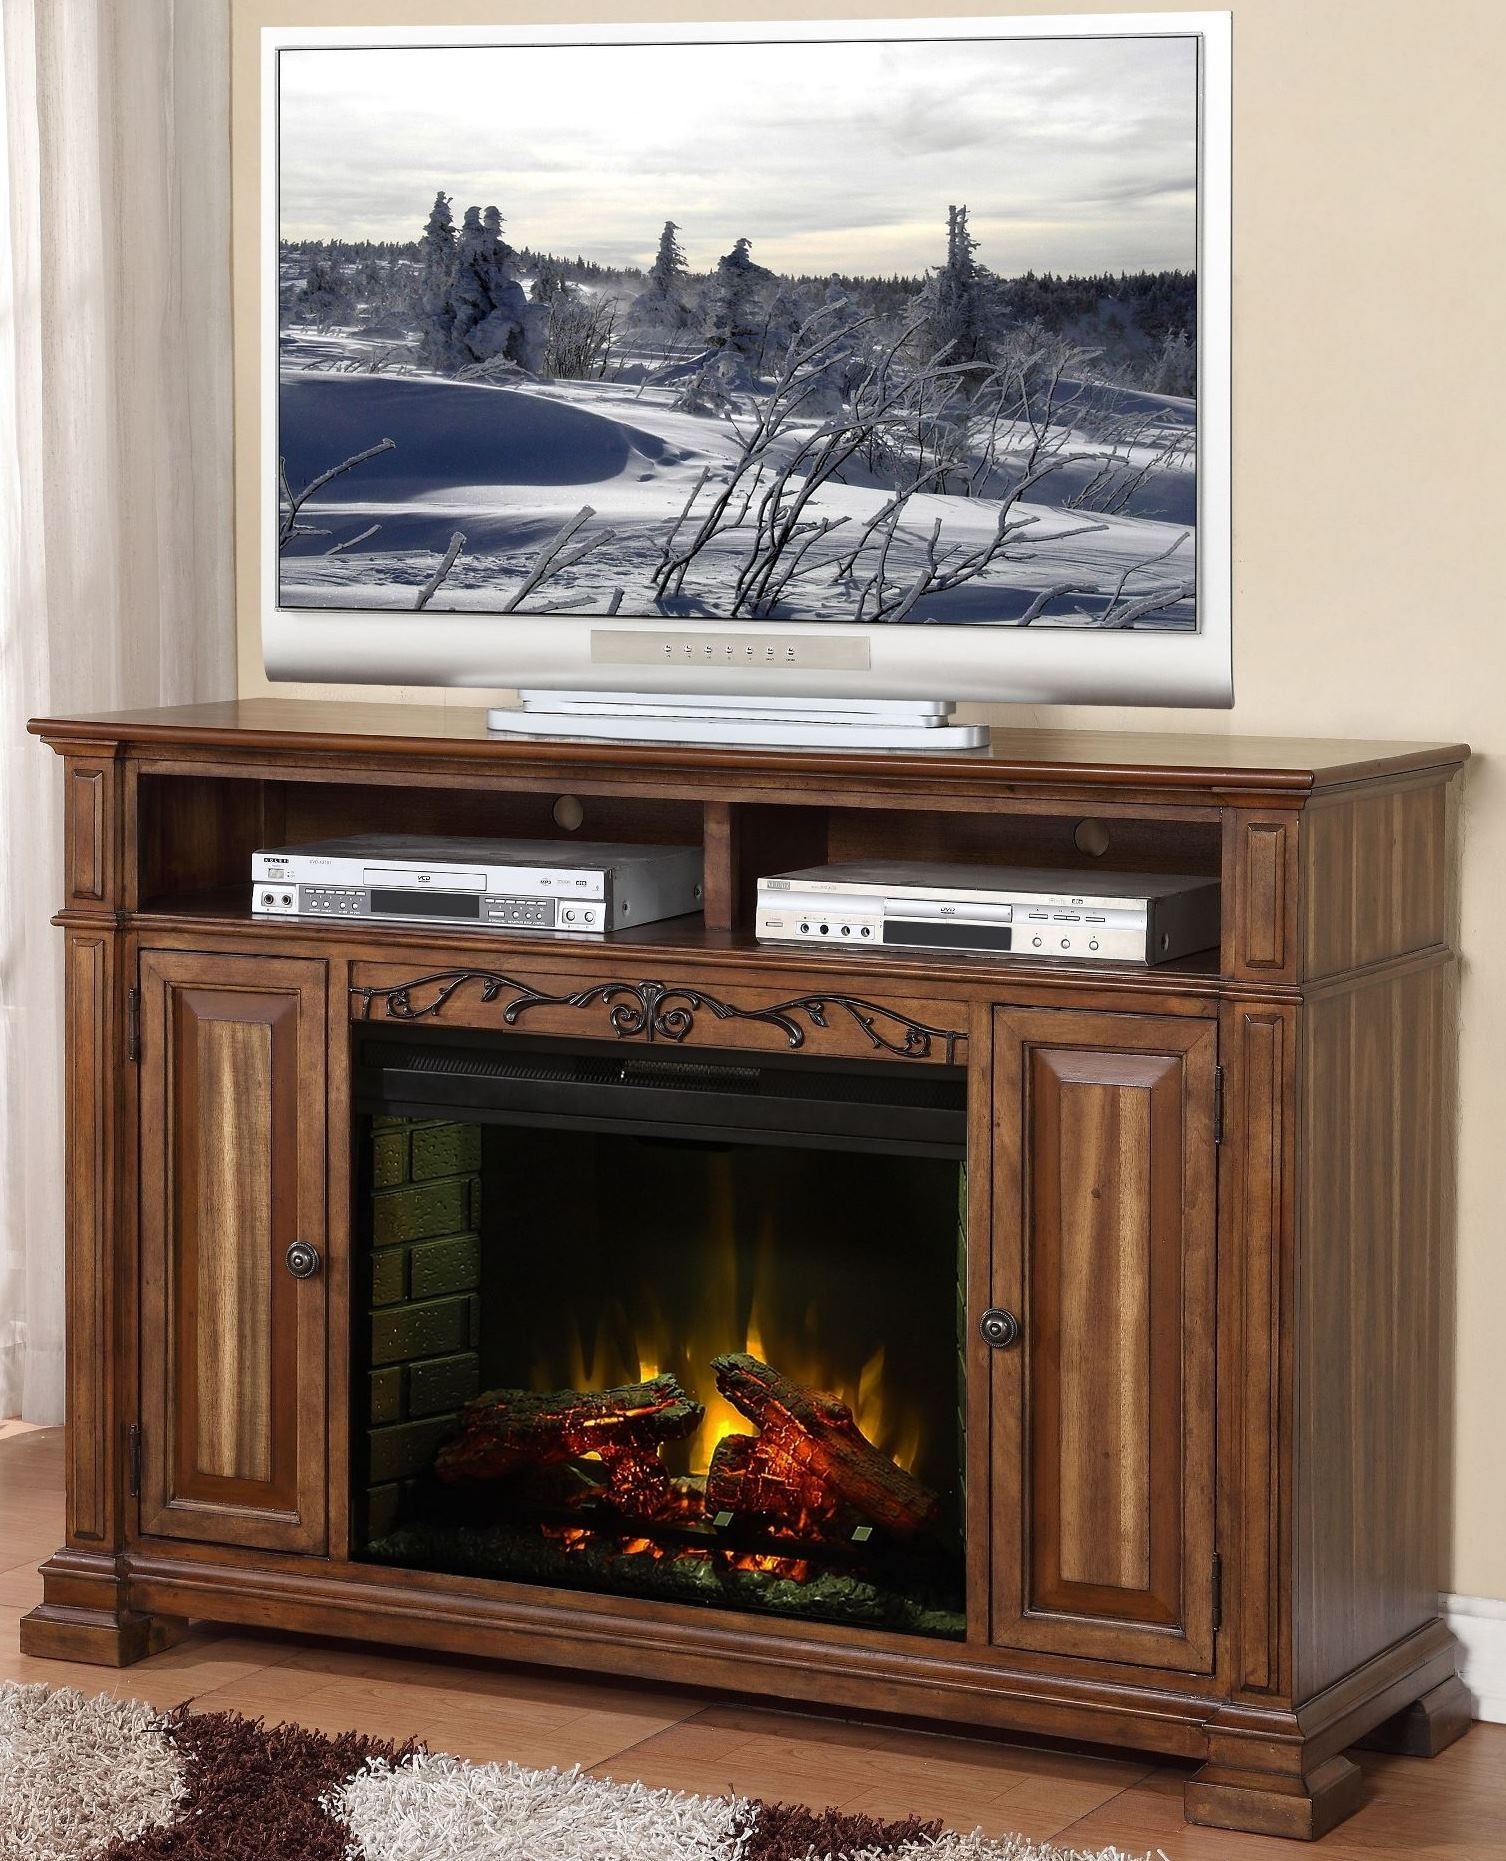 barclay rustic acacia fireplace media center from legends zbcl 1900